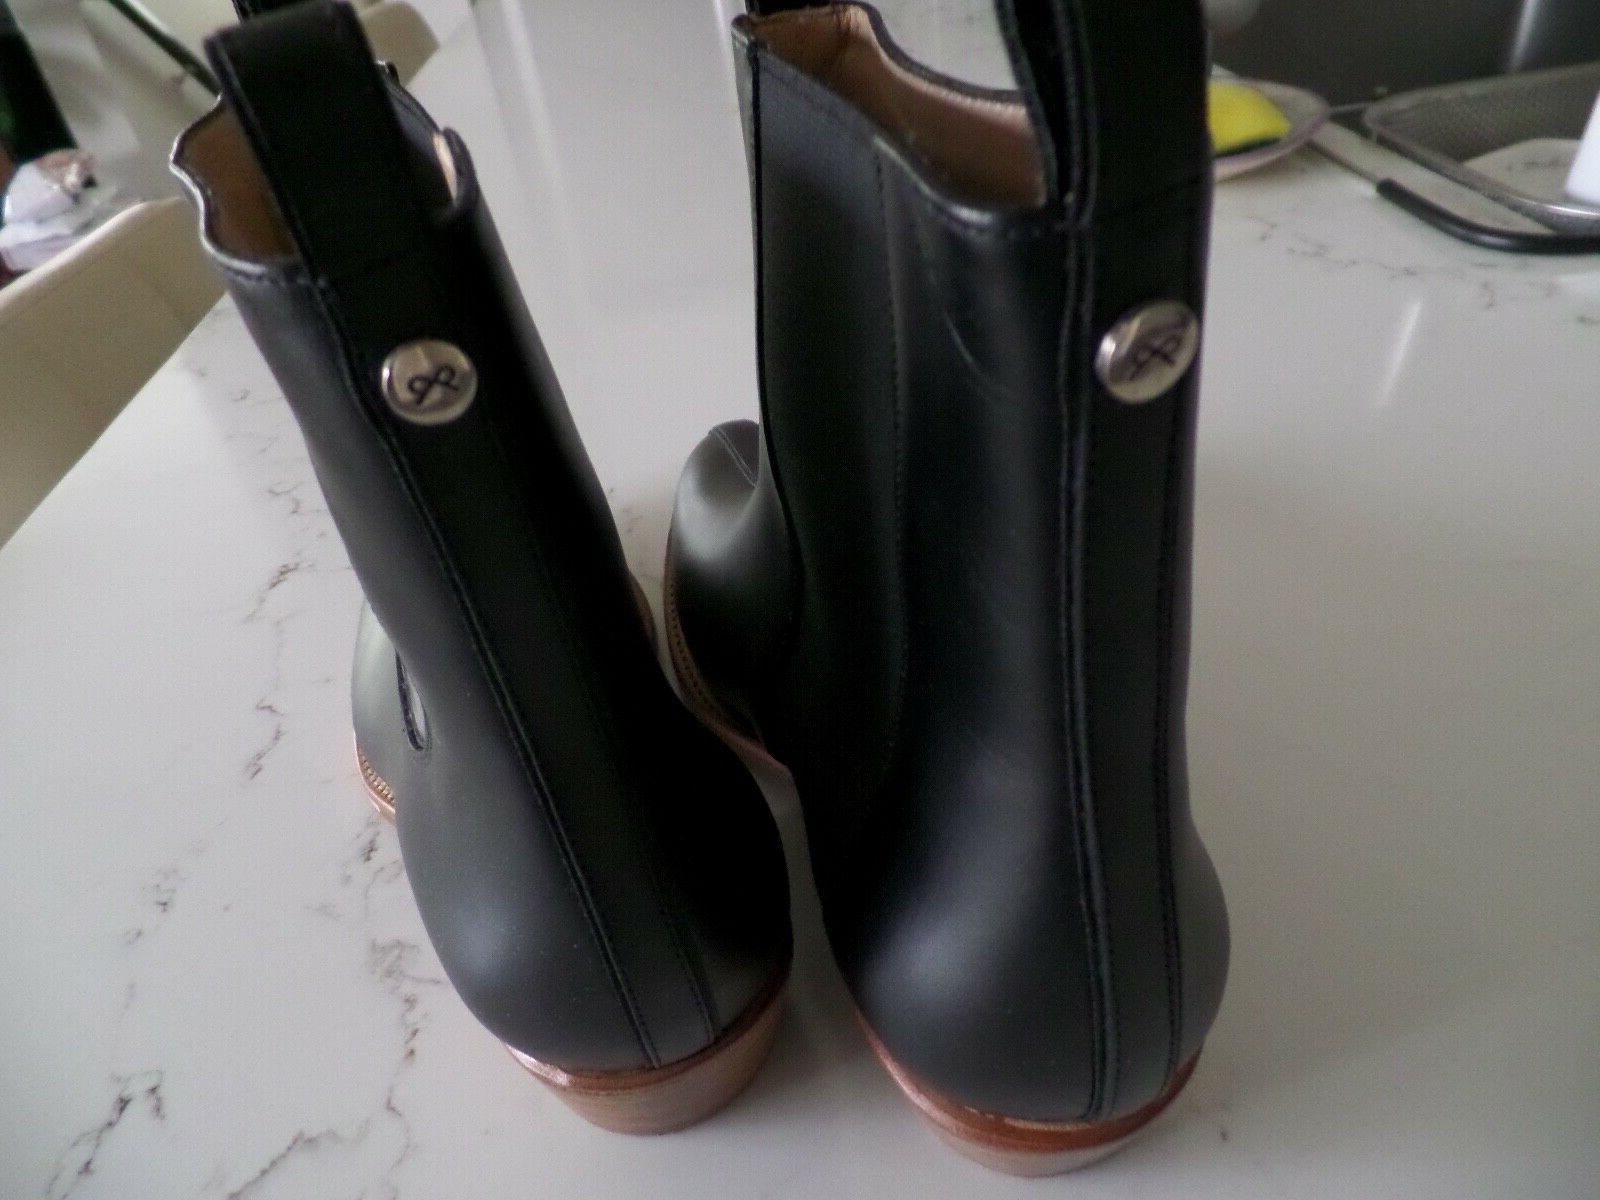 New Latest JOSEFINA western style ankle boots 41 US 10